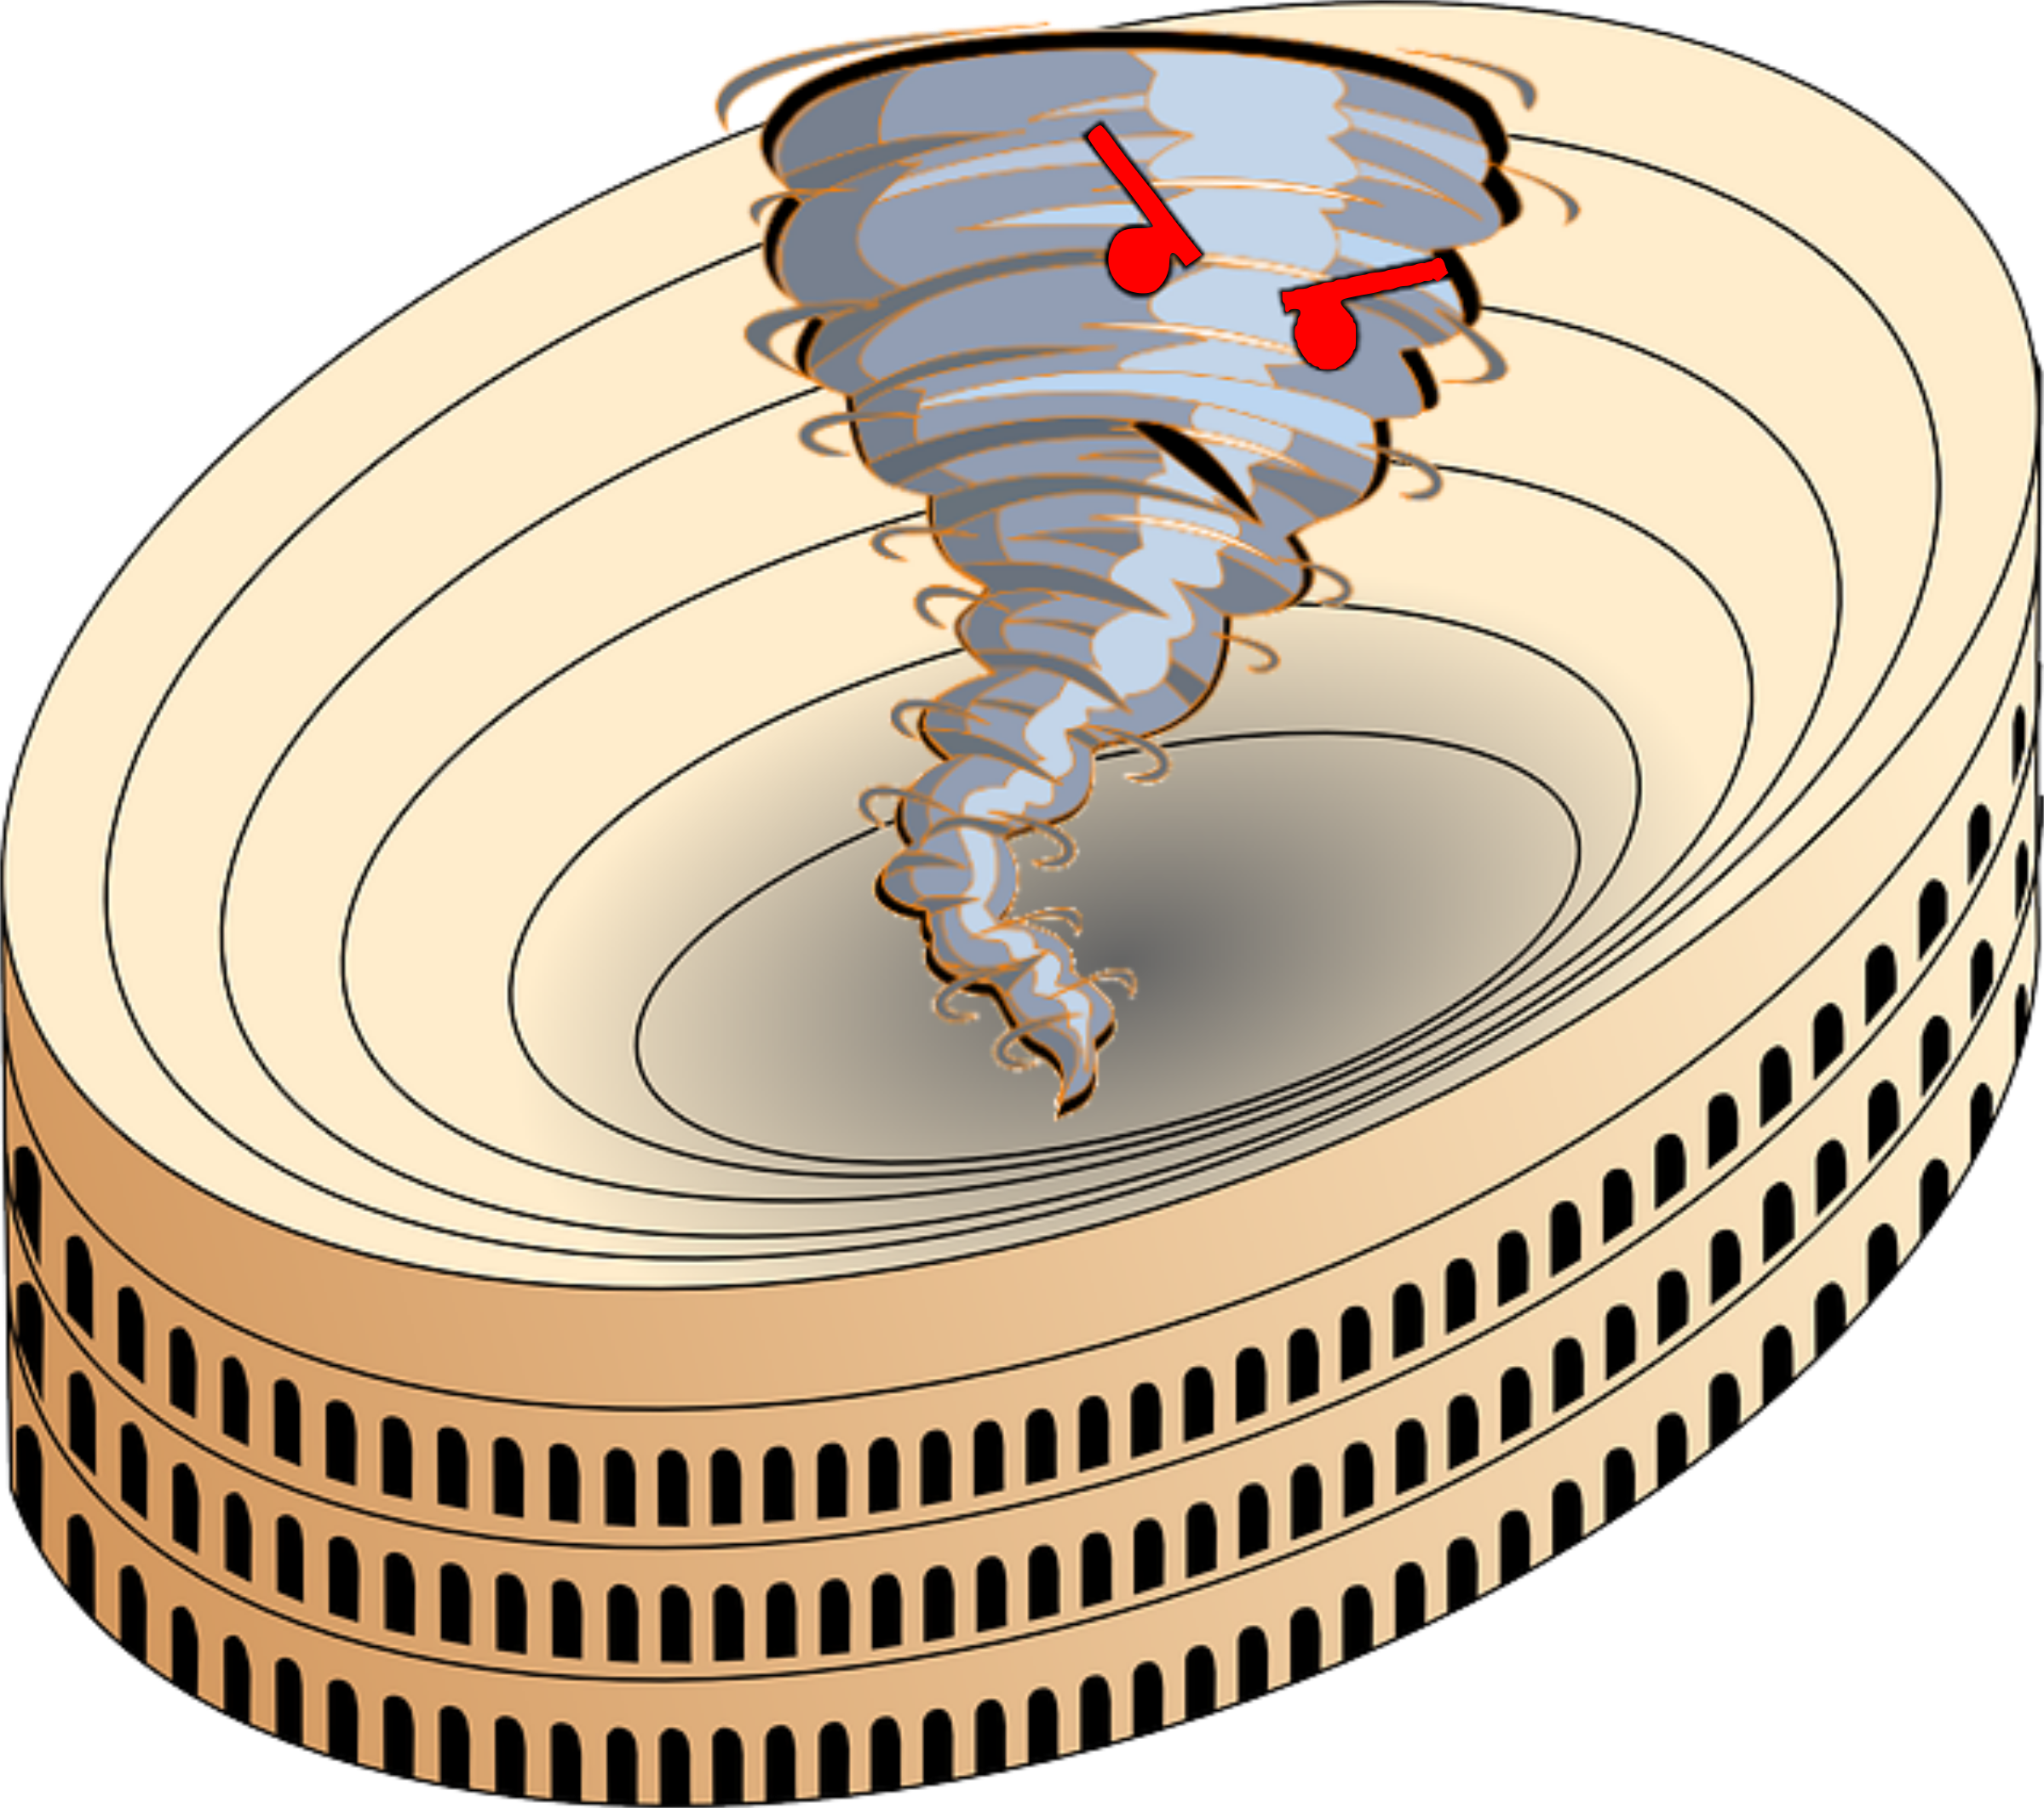 Tornado clip angry. Clipart with red eyes